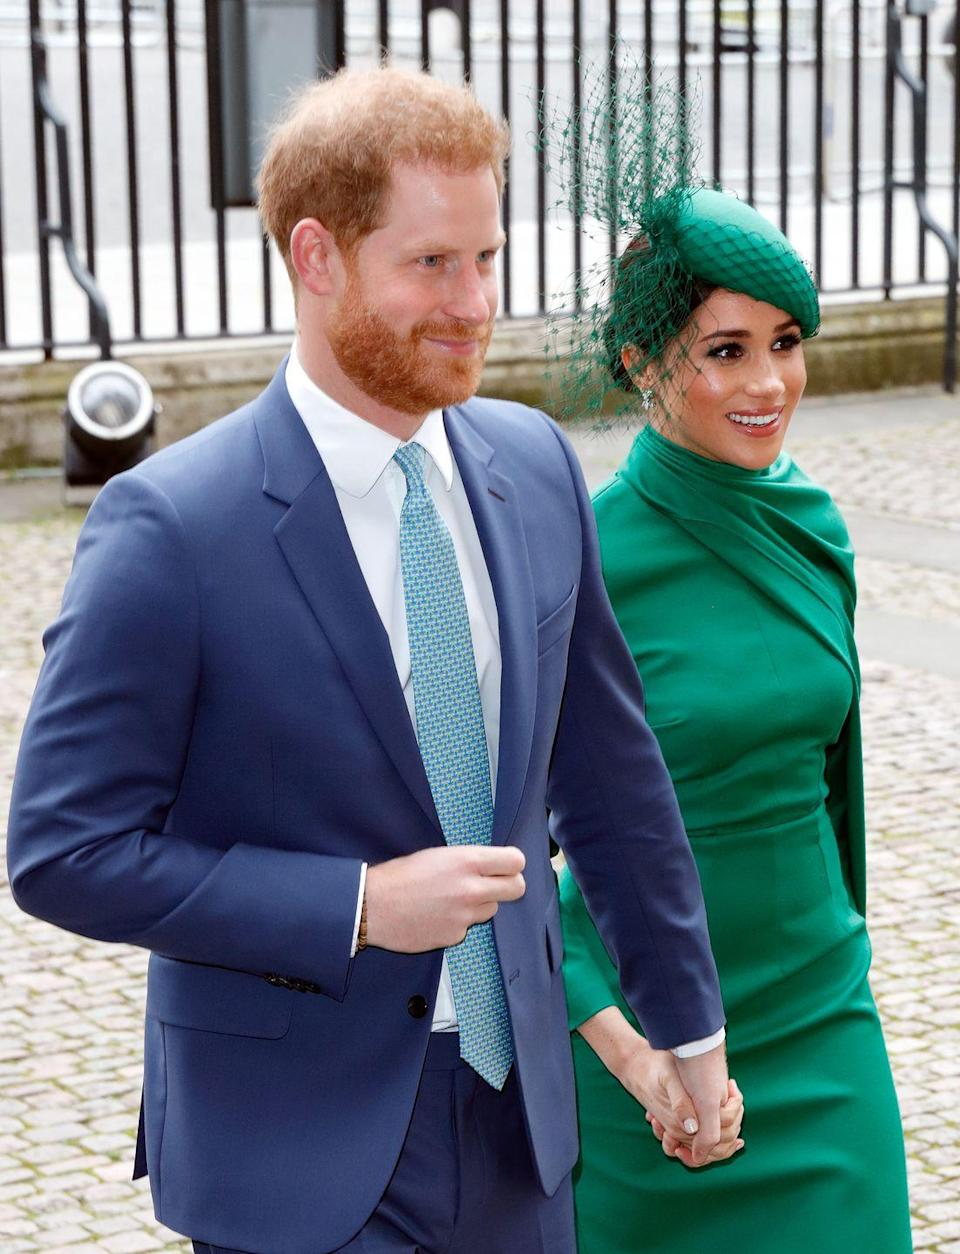 """<p><strong>When did they meet?</strong> 2016</p><p><strong>How did they meet? </strong><a href=""""https://www.cosmopolitan.com/uk/reports/a35162506/meghan-harry-timeline/"""" rel=""""nofollow noopener"""" target=""""_blank"""" data-ylk=""""slk:Prince Harry revealed he and American actress Meghan"""" class=""""link rapid-noclick-resp"""">Prince Harry revealed he and American actress Meghan</a> were set up on a blind date by a mutual friend. </p><p>Speaking to the BBC about their first date, Meghan said: """"Because I'm from the States, you don't grow up with the same understanding of the Royal Family. I didn't know much about him, so the only thing that I had asked [our mutual friend] when she said that she wanted to set us up, was, 'Well is he nice?' Because if he wasn't kind, it just didn't seem like it would make sense.""""</p>"""